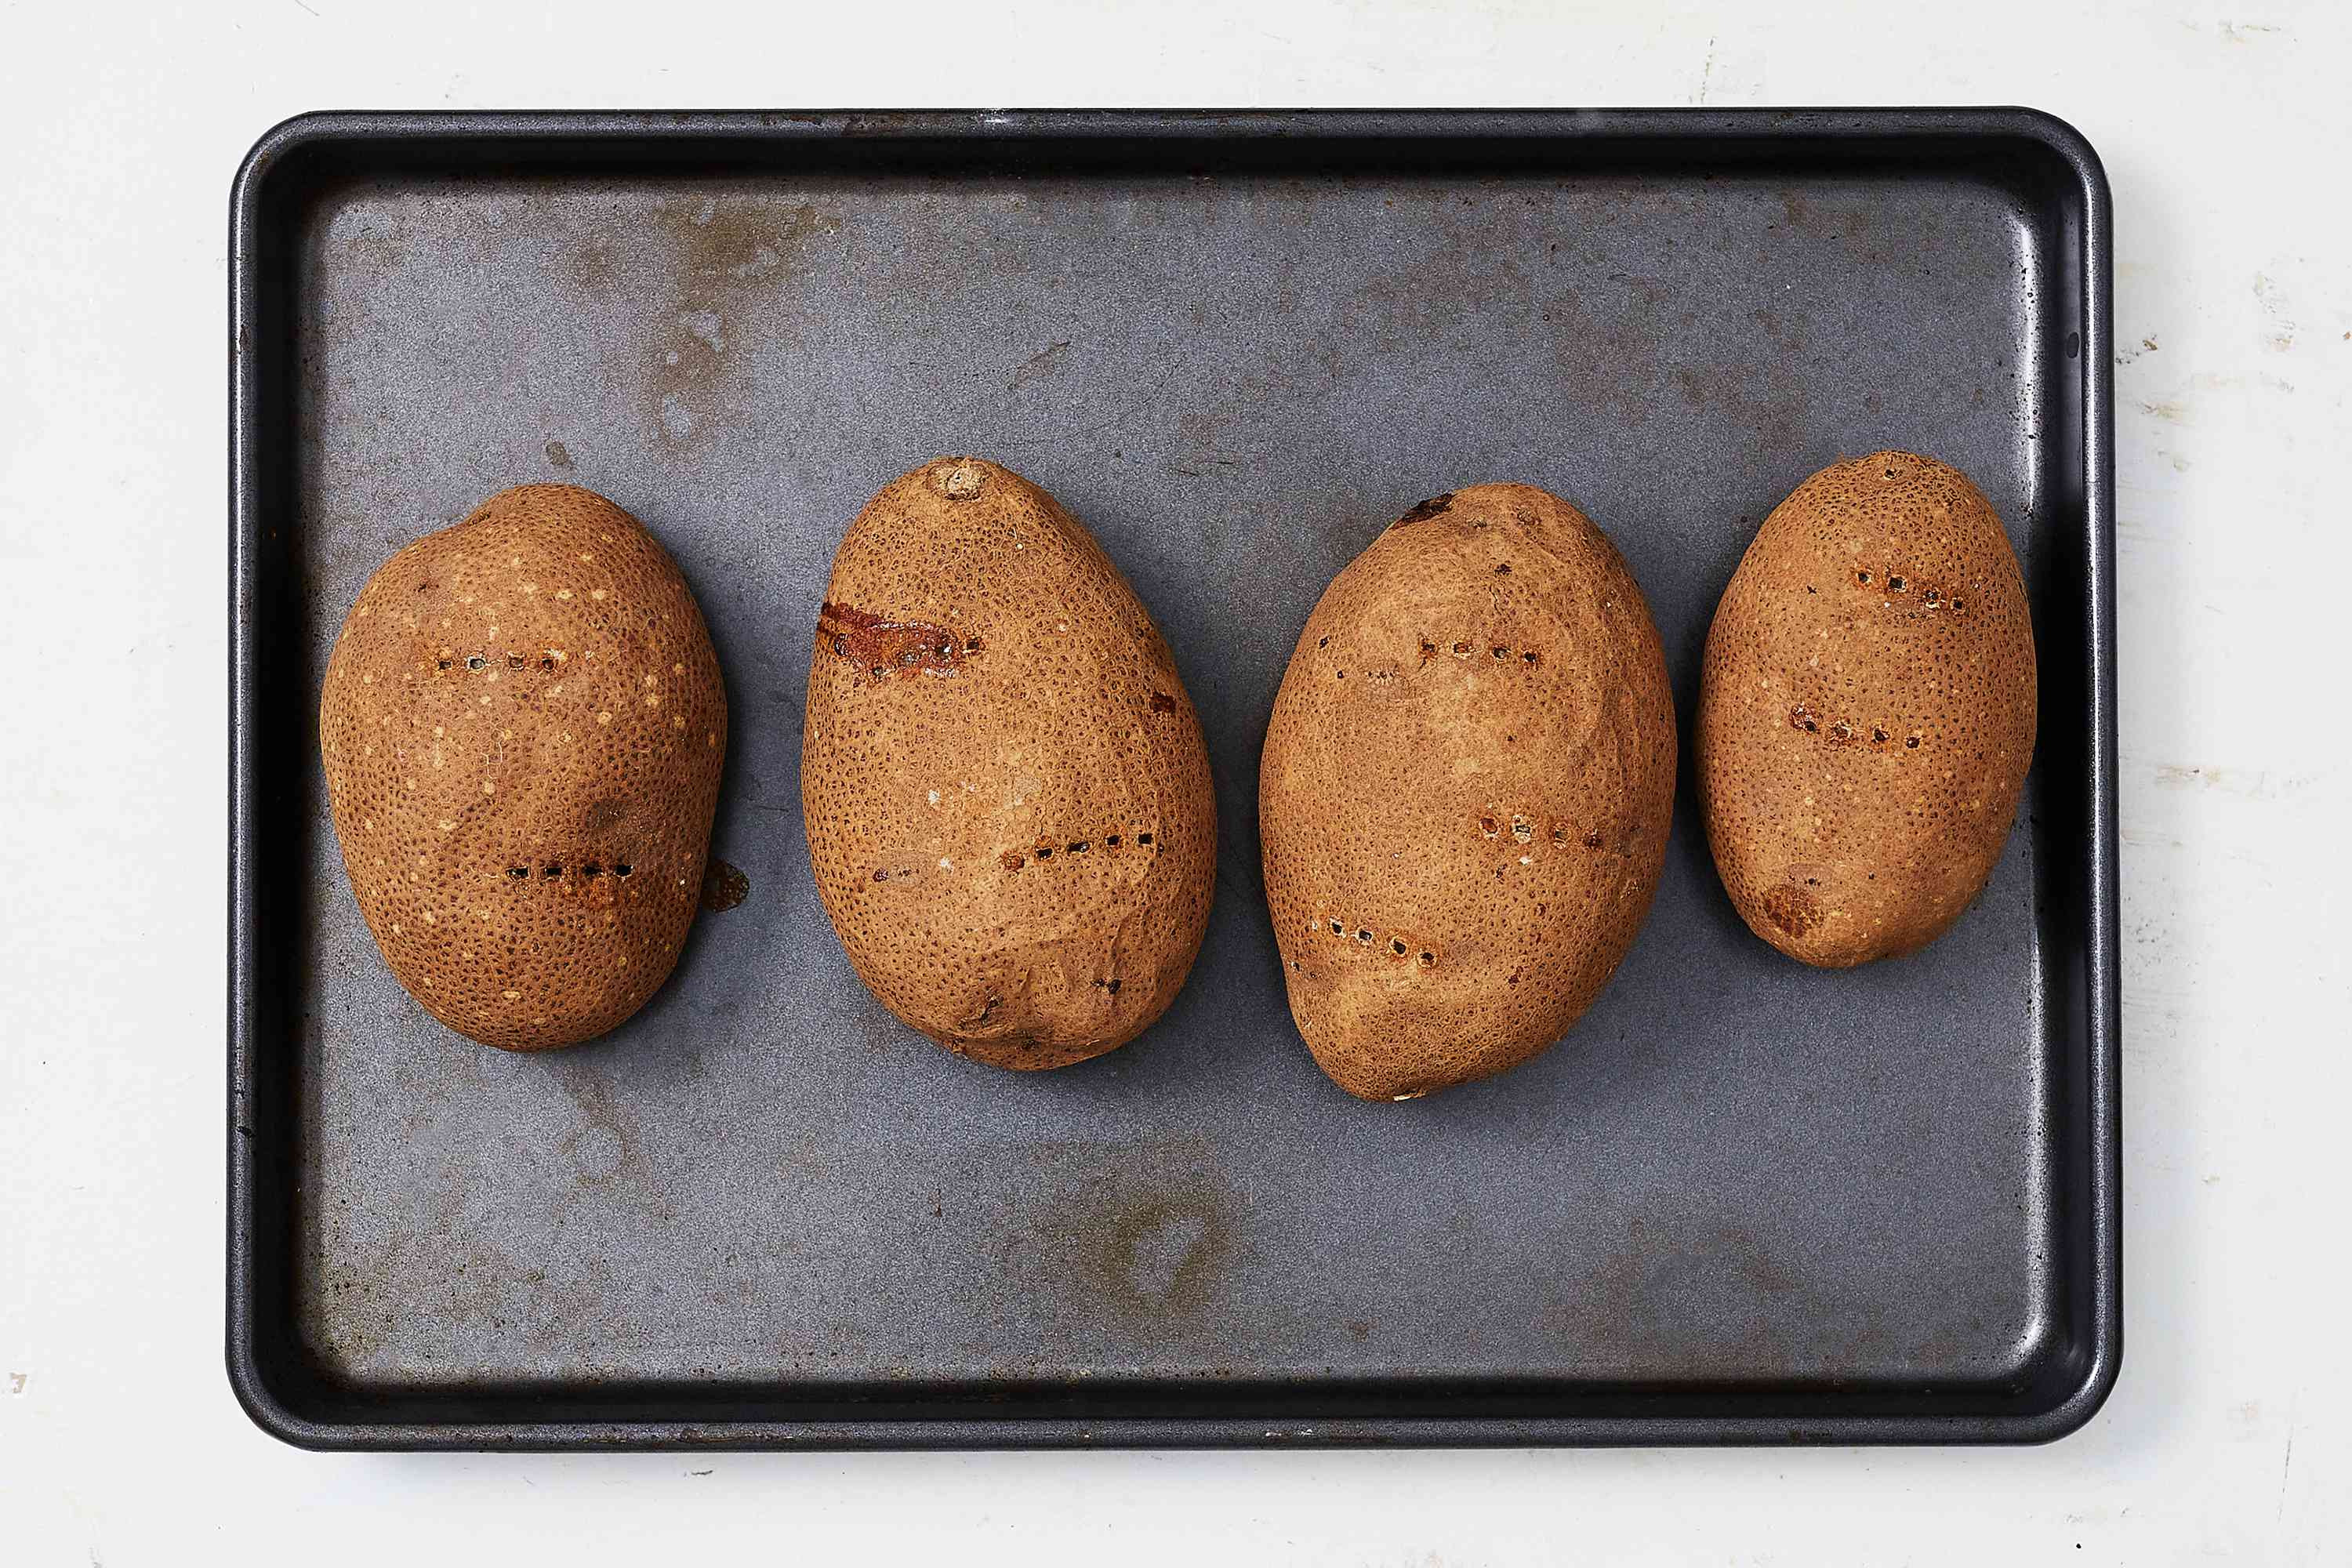 Prick potatoes in several places with a fork, on a baking sheet